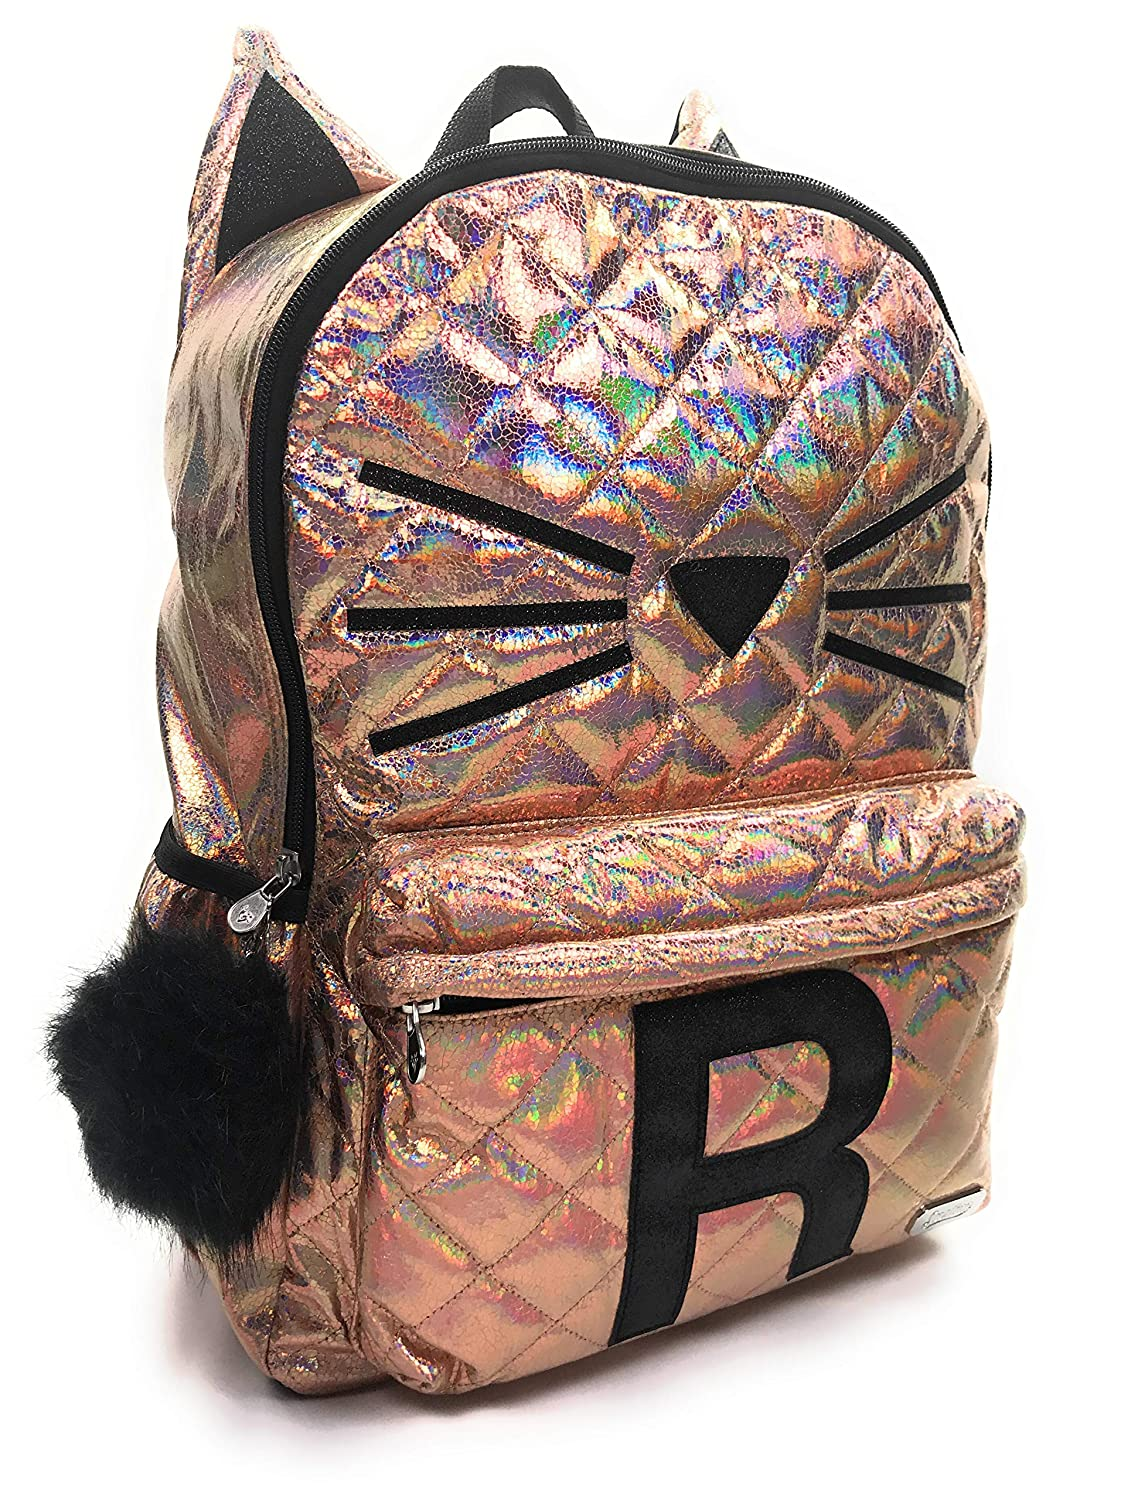 M Justice Girls Backpack Quilted Cat Initial Backpack Bag Rucksack Back to School